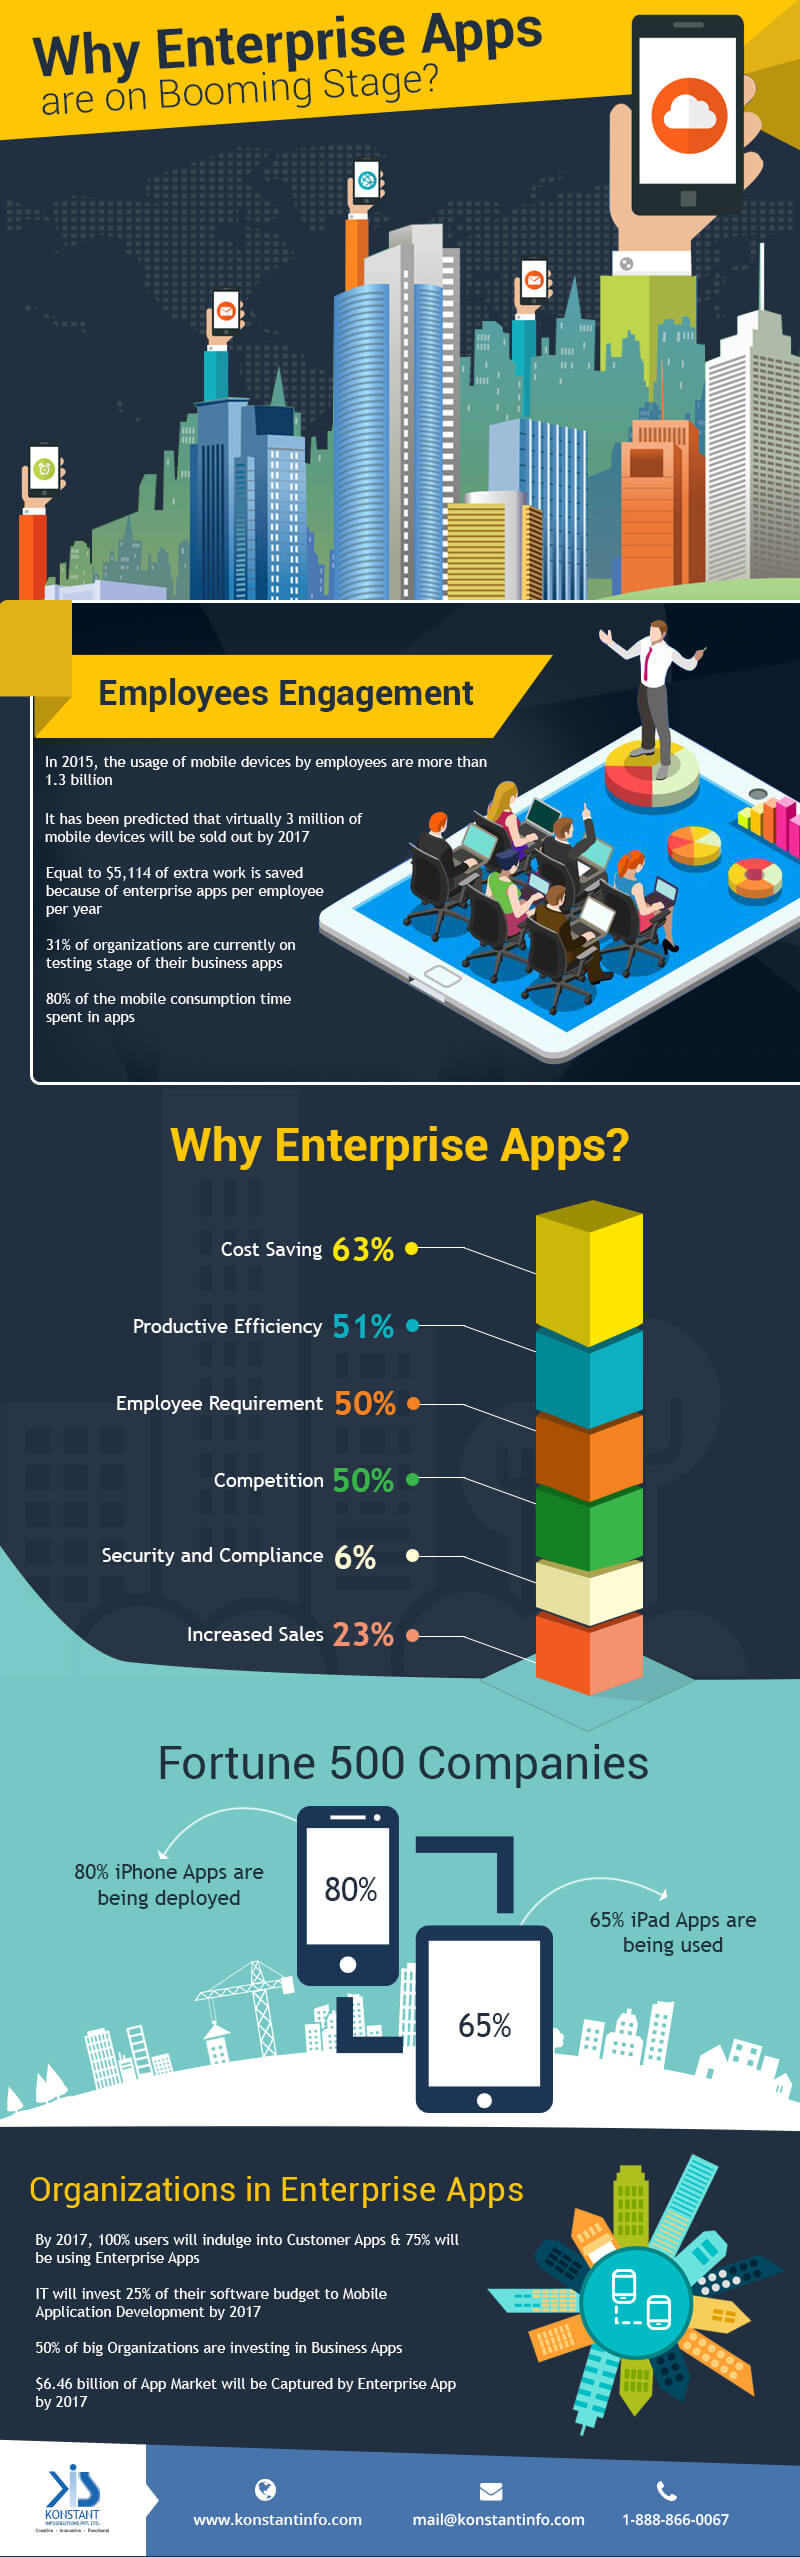 Infographic- Why Apps are new trend in Enterprises